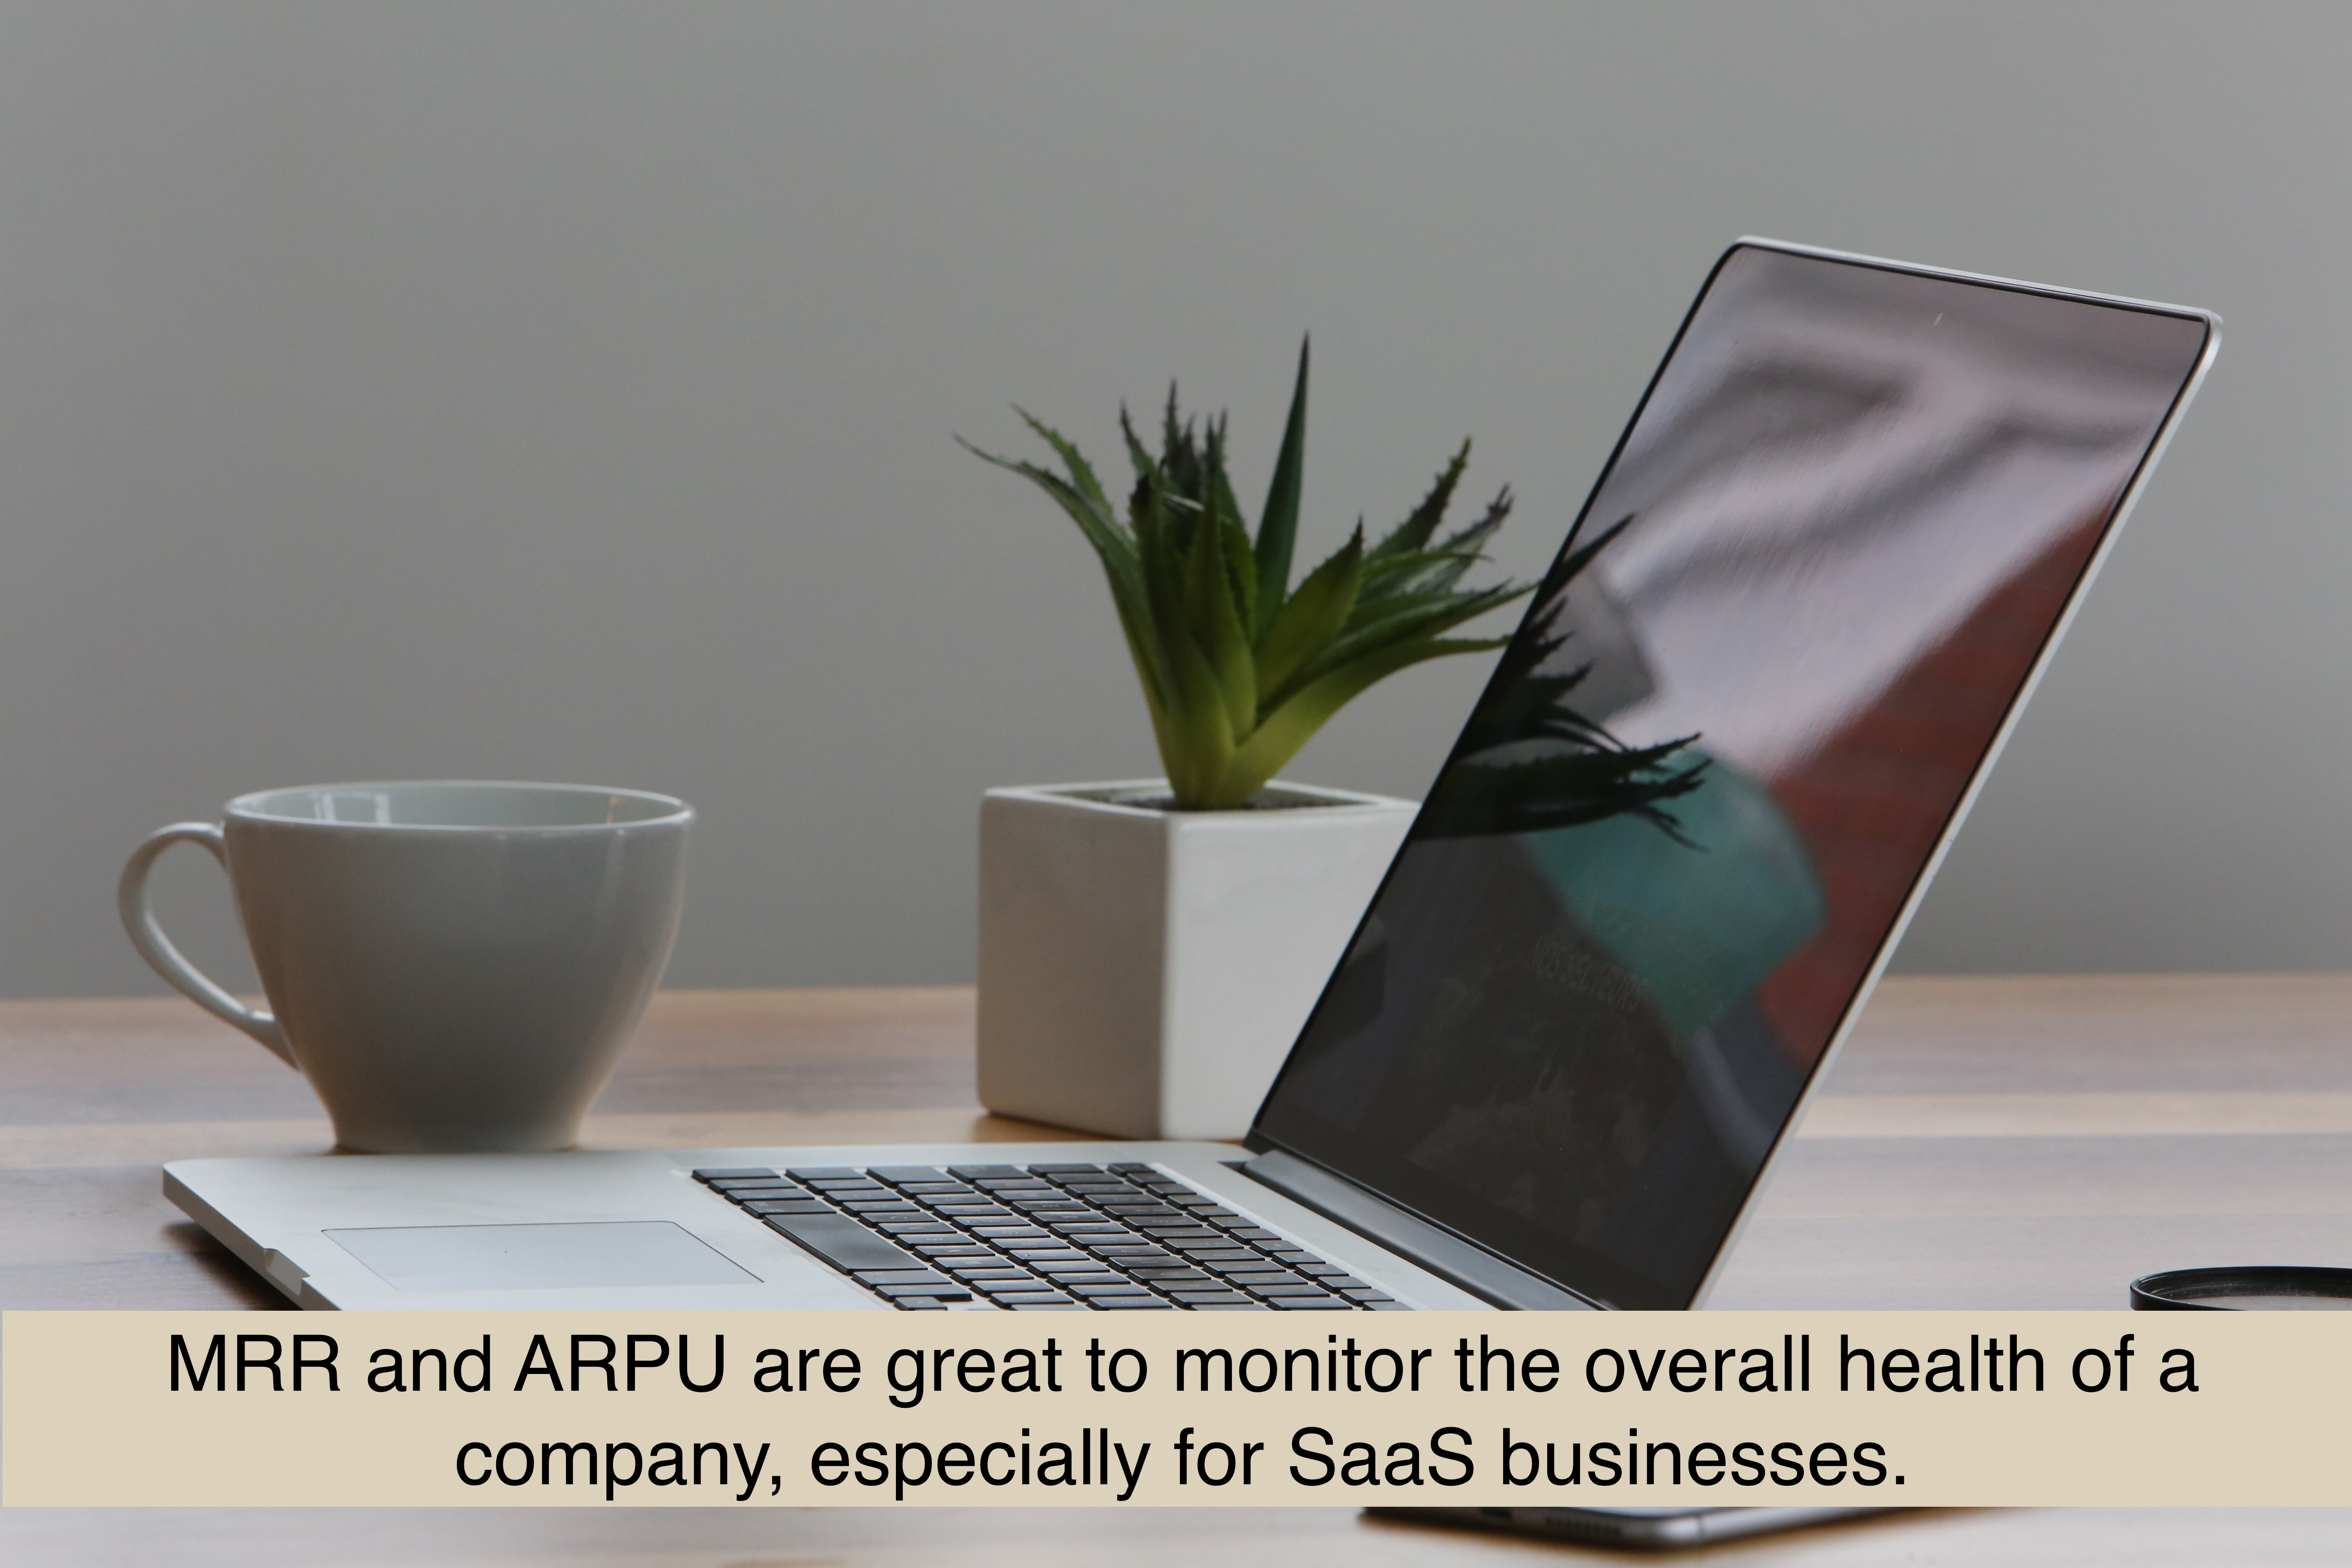 MRR and ARPU are great to monitor the overall health of a company, especially for SaaS businesses.